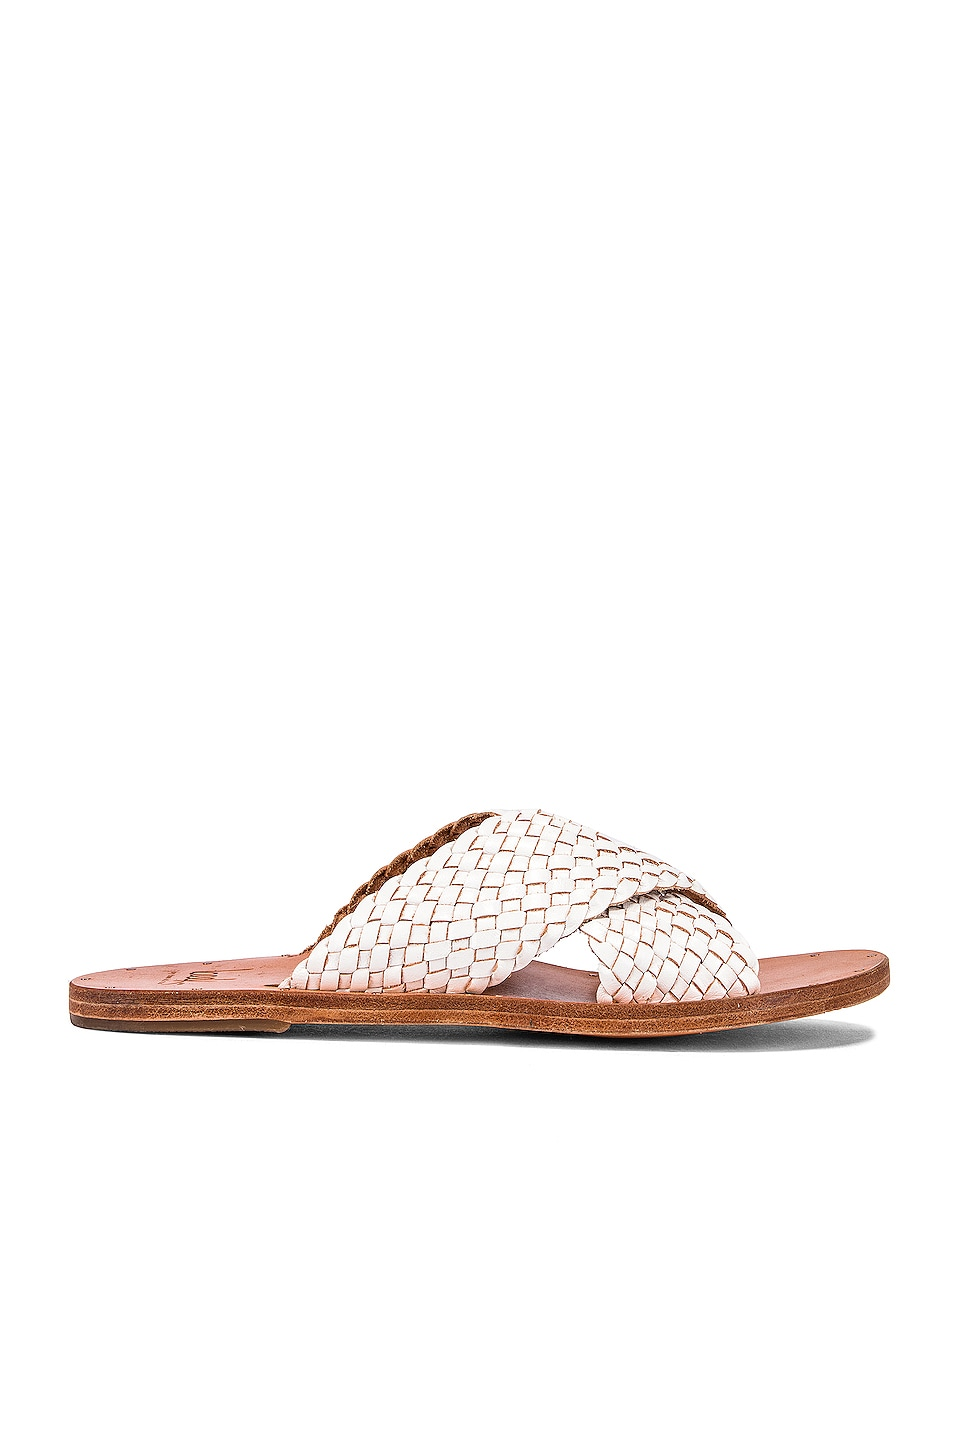 Beek Plover Slide in White & Tan